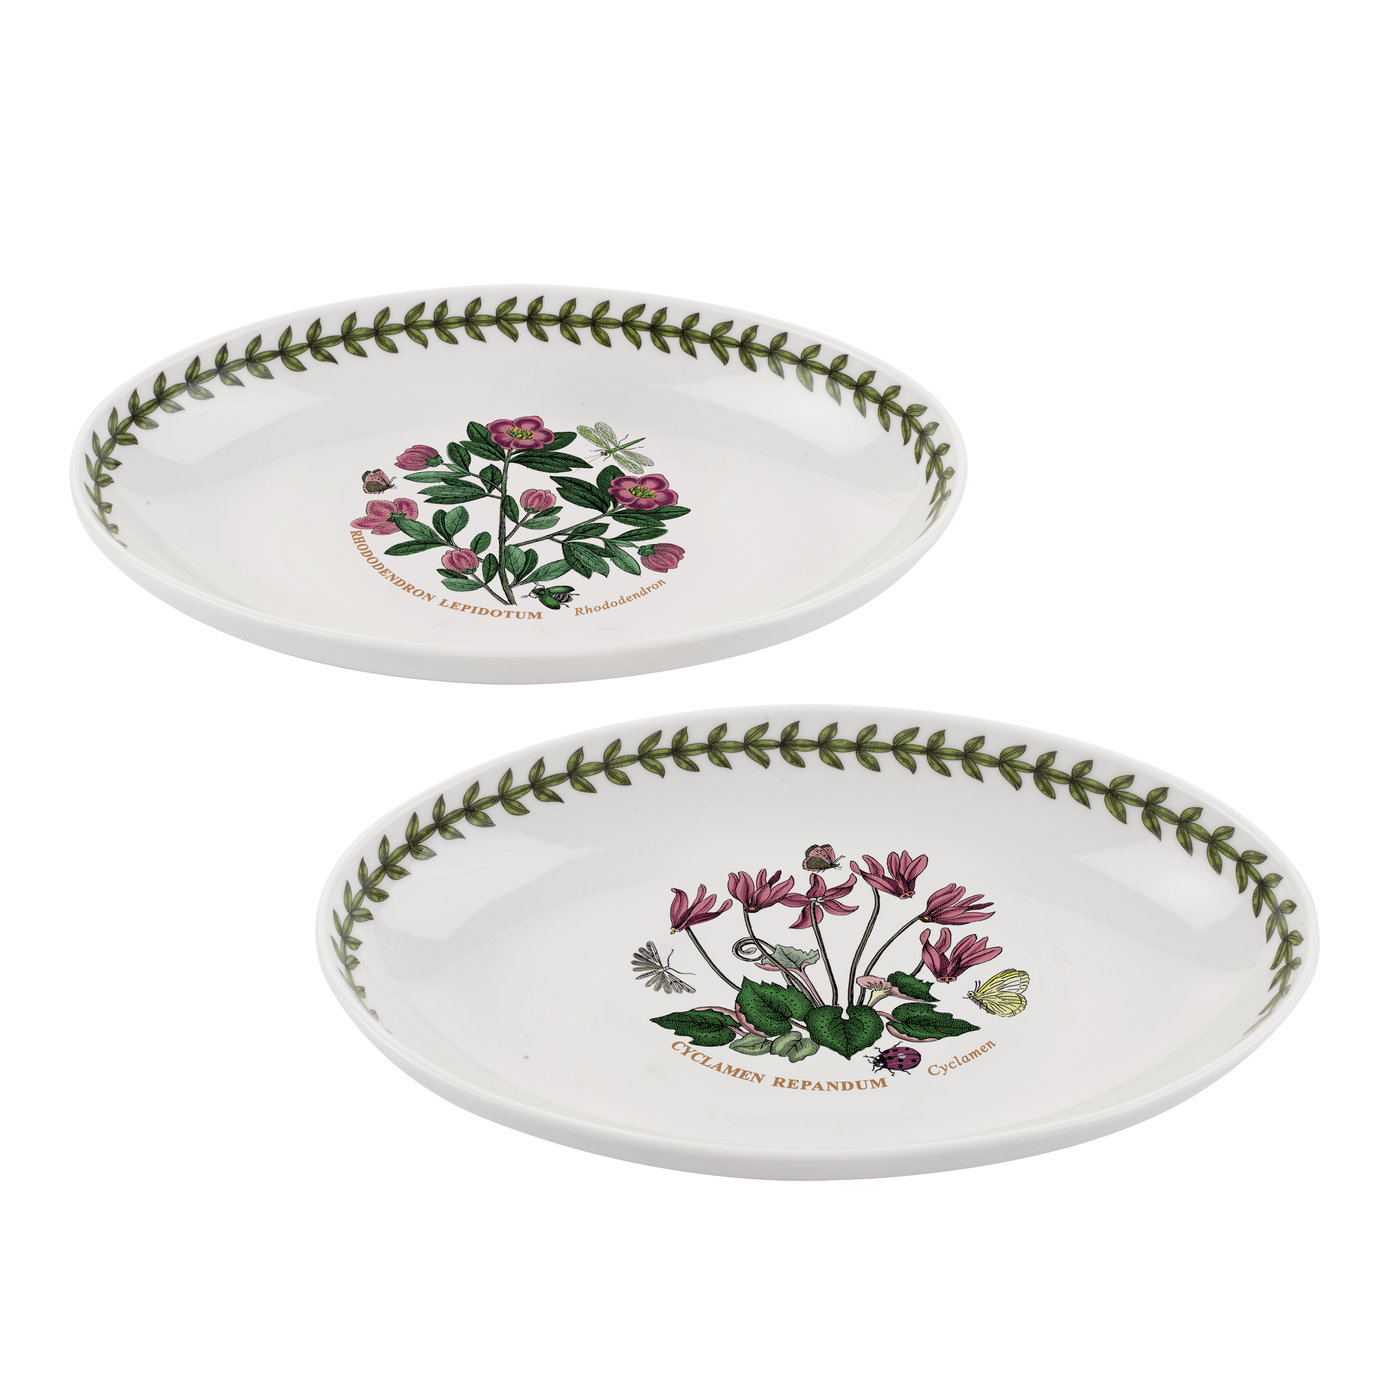 Botanic Garden Set of 2 Oval Dishes (Cyclamen/Rhododendron) image number 0